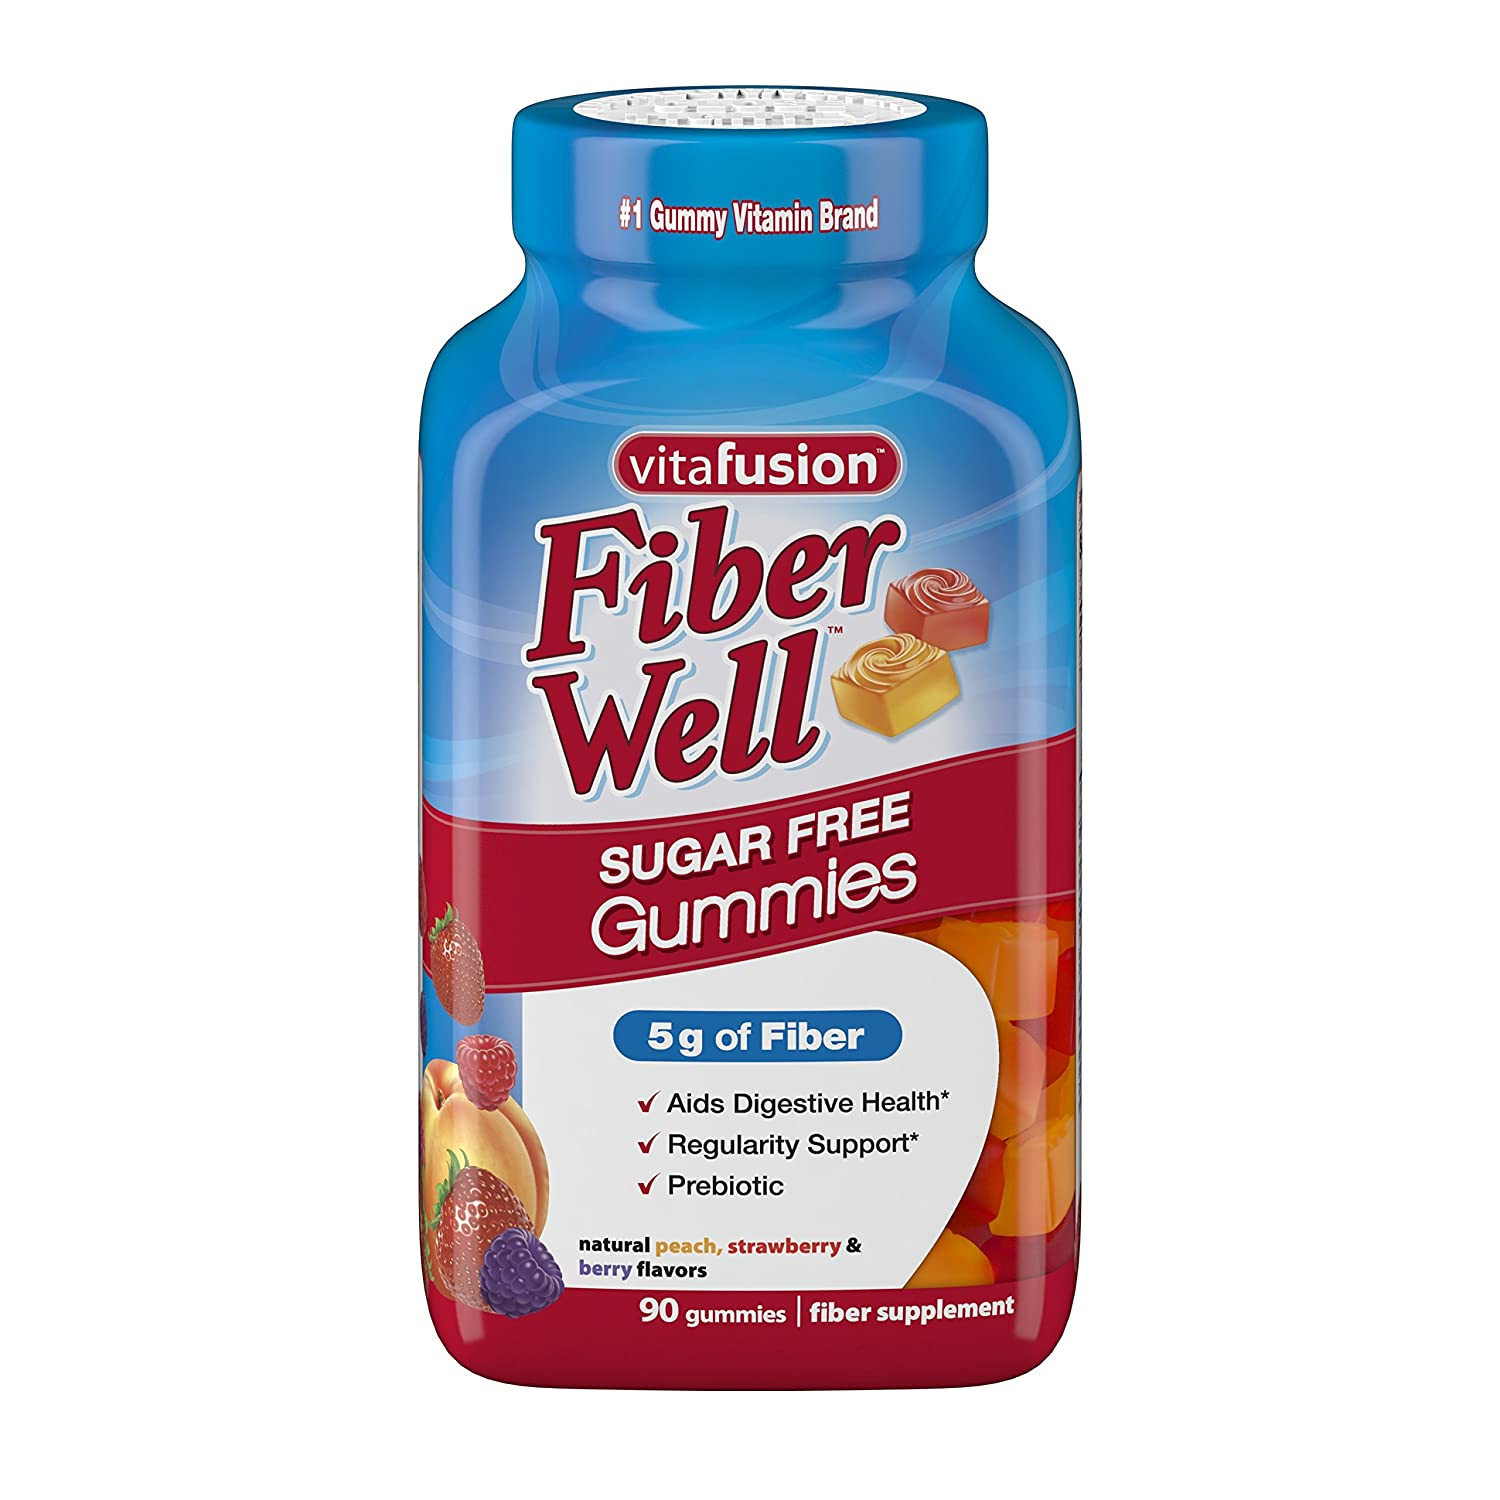 Vitafusion Fiber Well Gummies, 90 Count (Packaging May Vary) 1.00279E+13